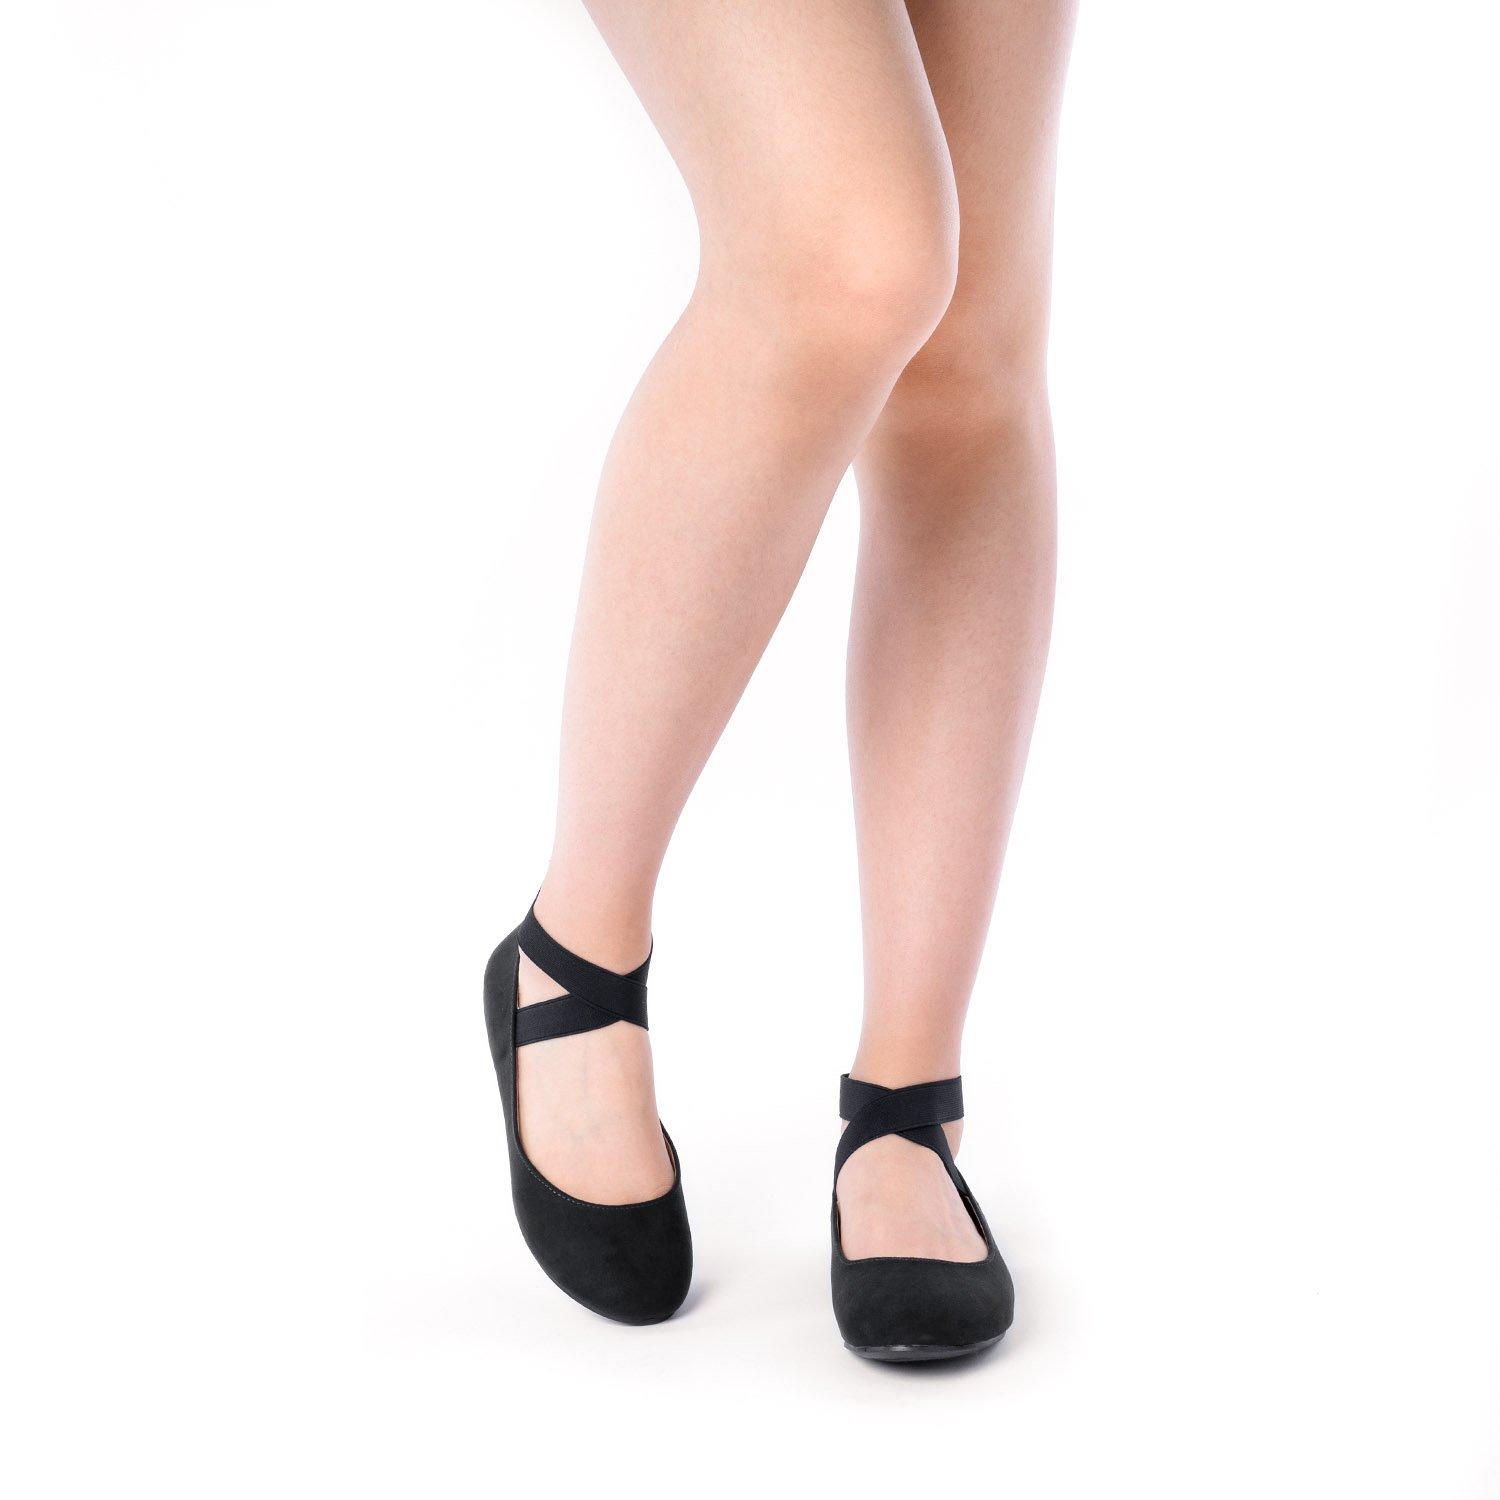 DREAM PAIRS Women's Sole_Stretchy Black Fashion Elastic Ankle Straps Flats Shoes Size 9 M US by DREAM PAIRS (Image #5)